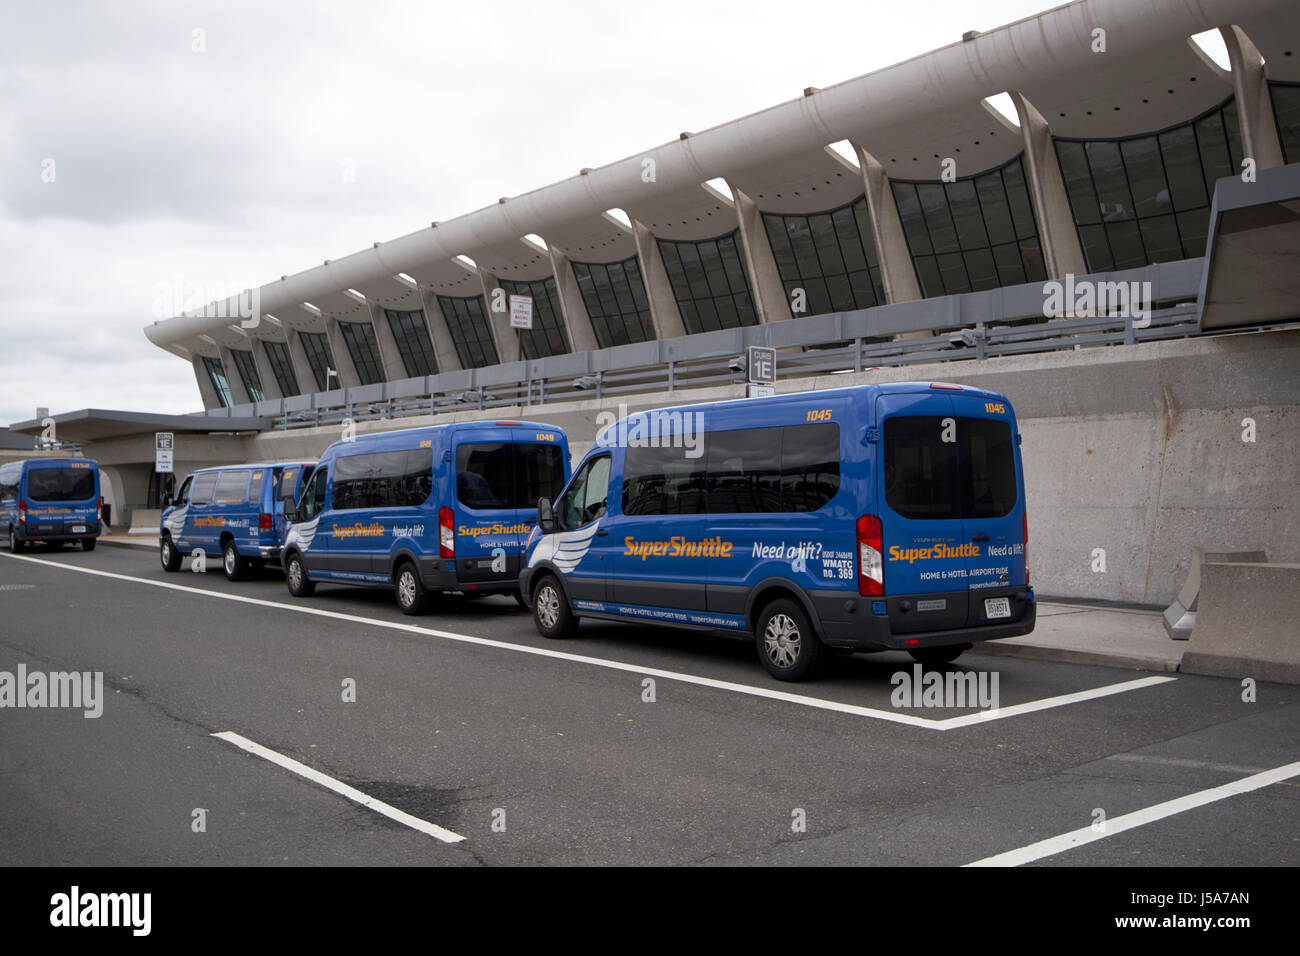 SuperShuttle Airport Transportation